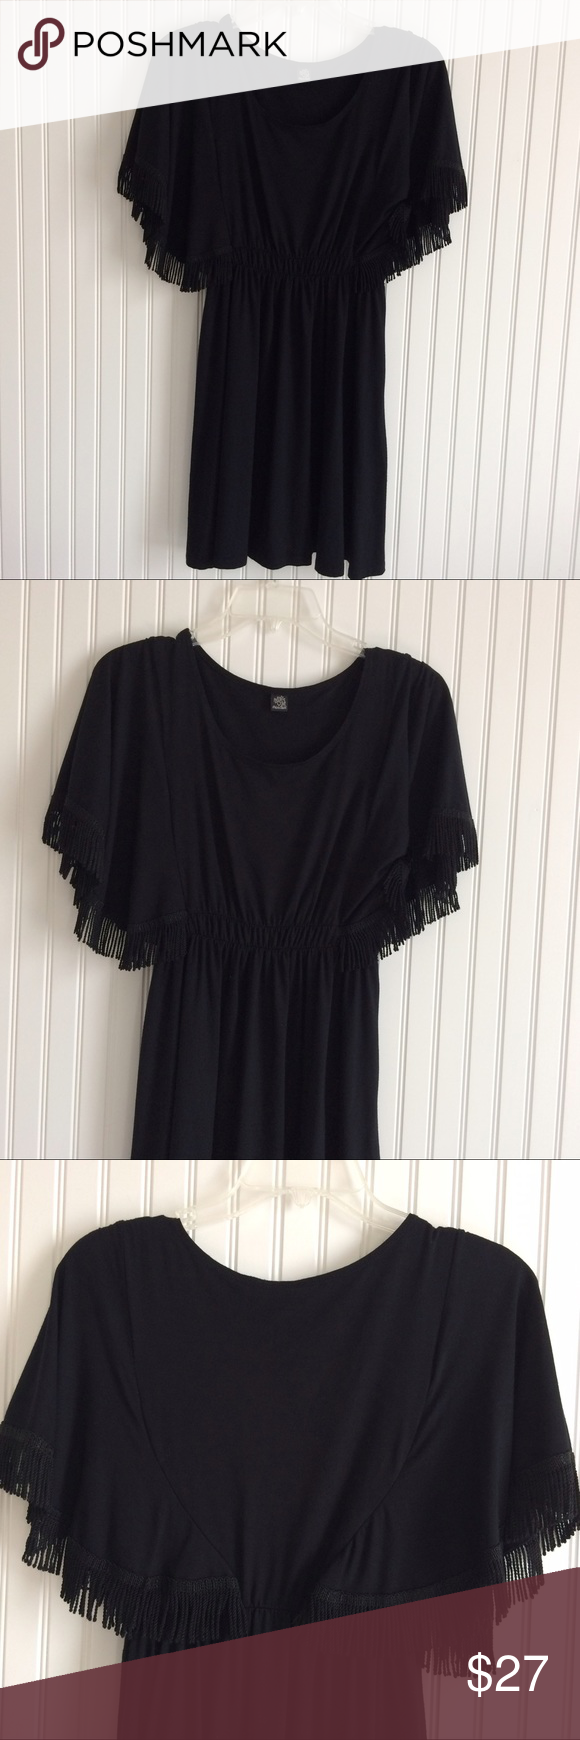 Only hearts fringed sleeve black dress size L Very versatile black dress. Can be worn alone or with a great belt. It can also be used as a swimsuit coverup. It has an elastic waistband. It is in very good condition. No rips or stains onlyhearts Dresses Mini